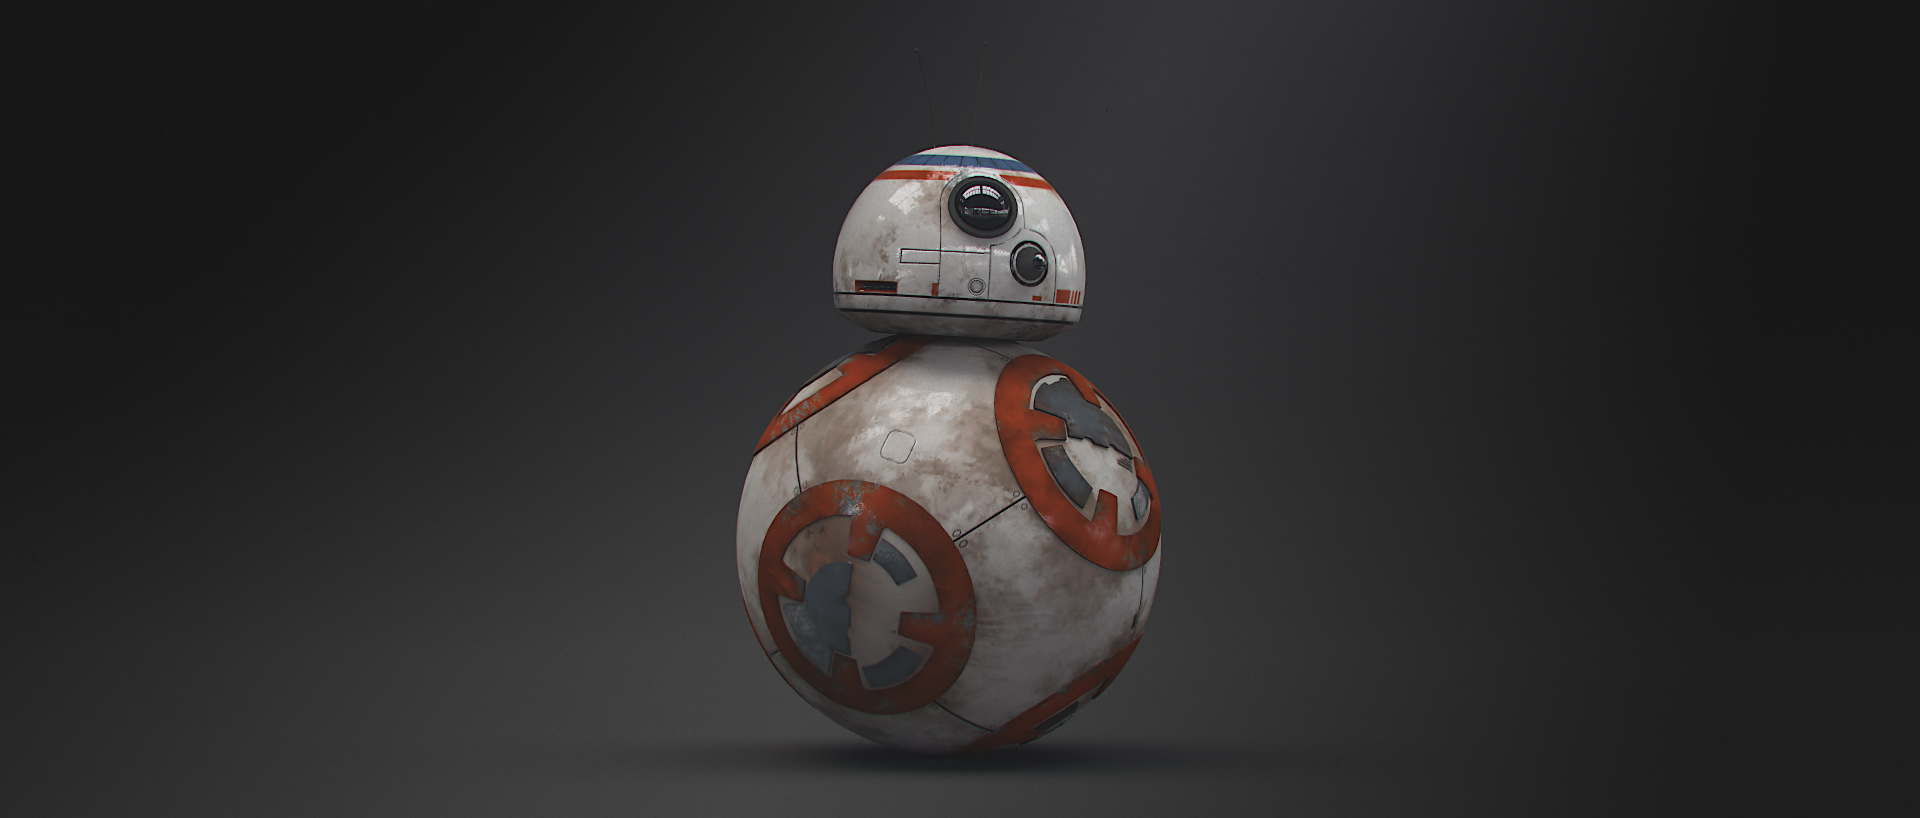 bb8 wallpaper hd - photo #10